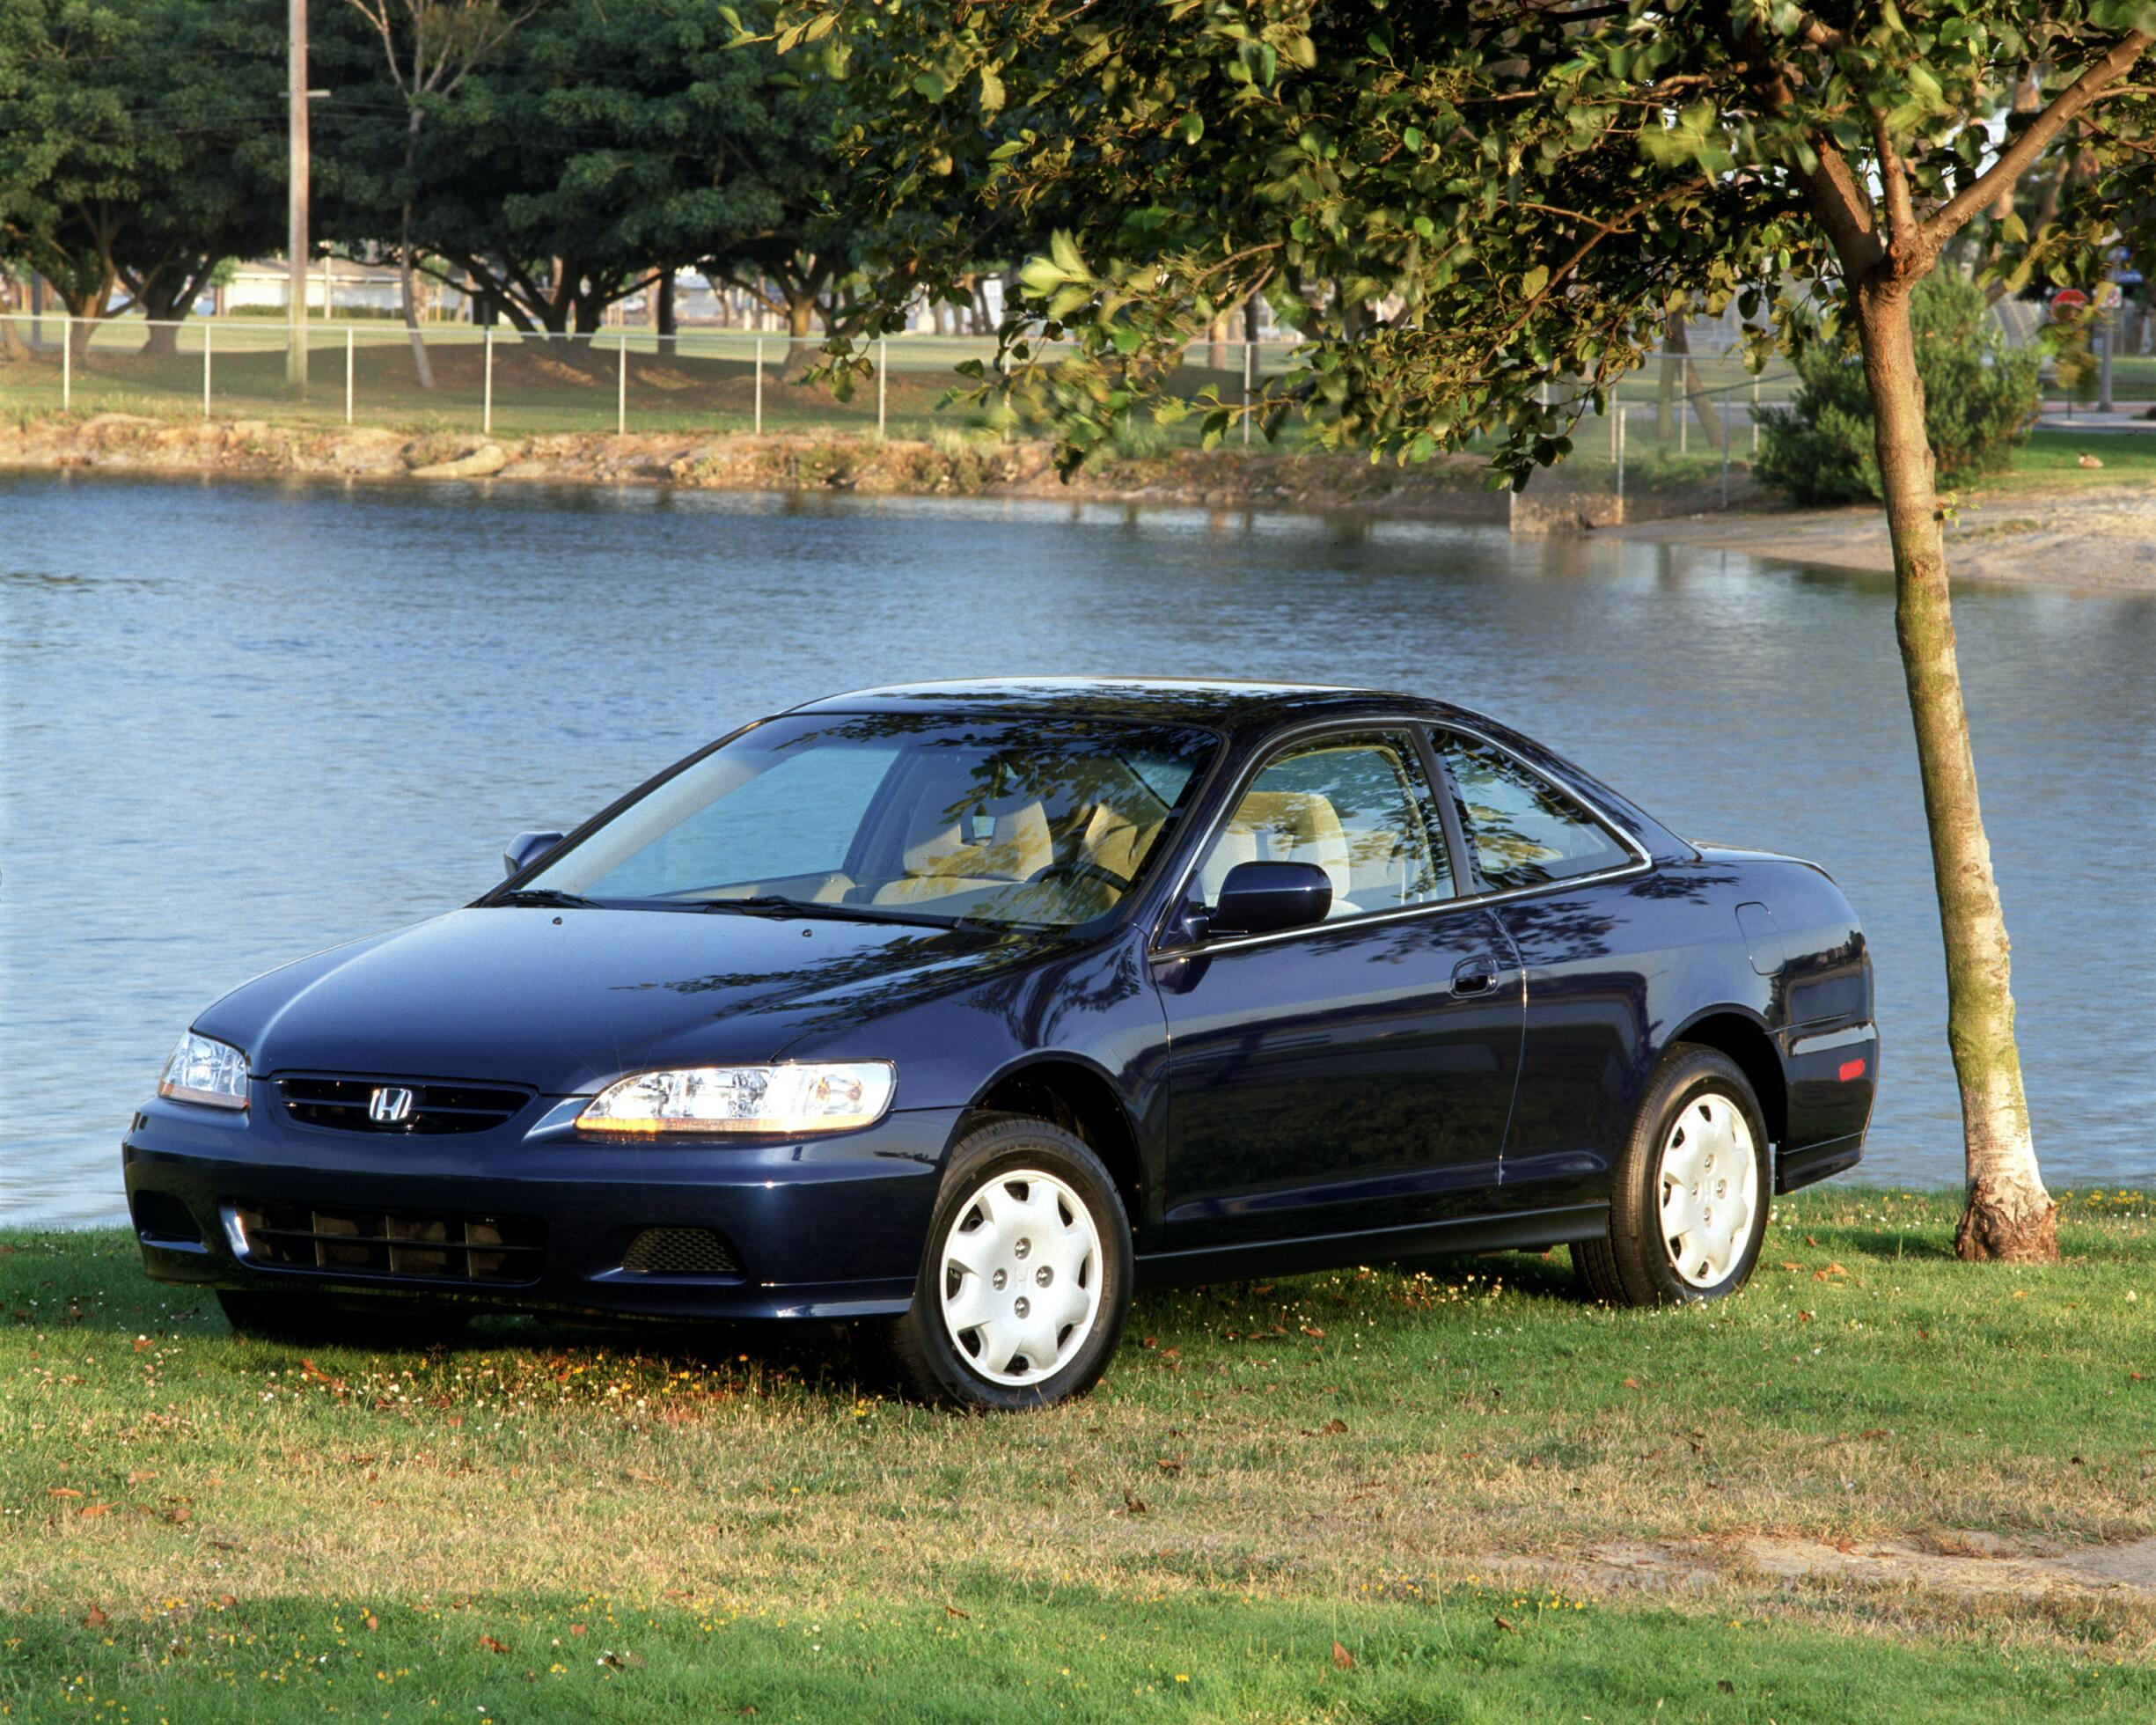 2001 honda accord coupe picture 108116. Black Bedroom Furniture Sets. Home Design Ideas